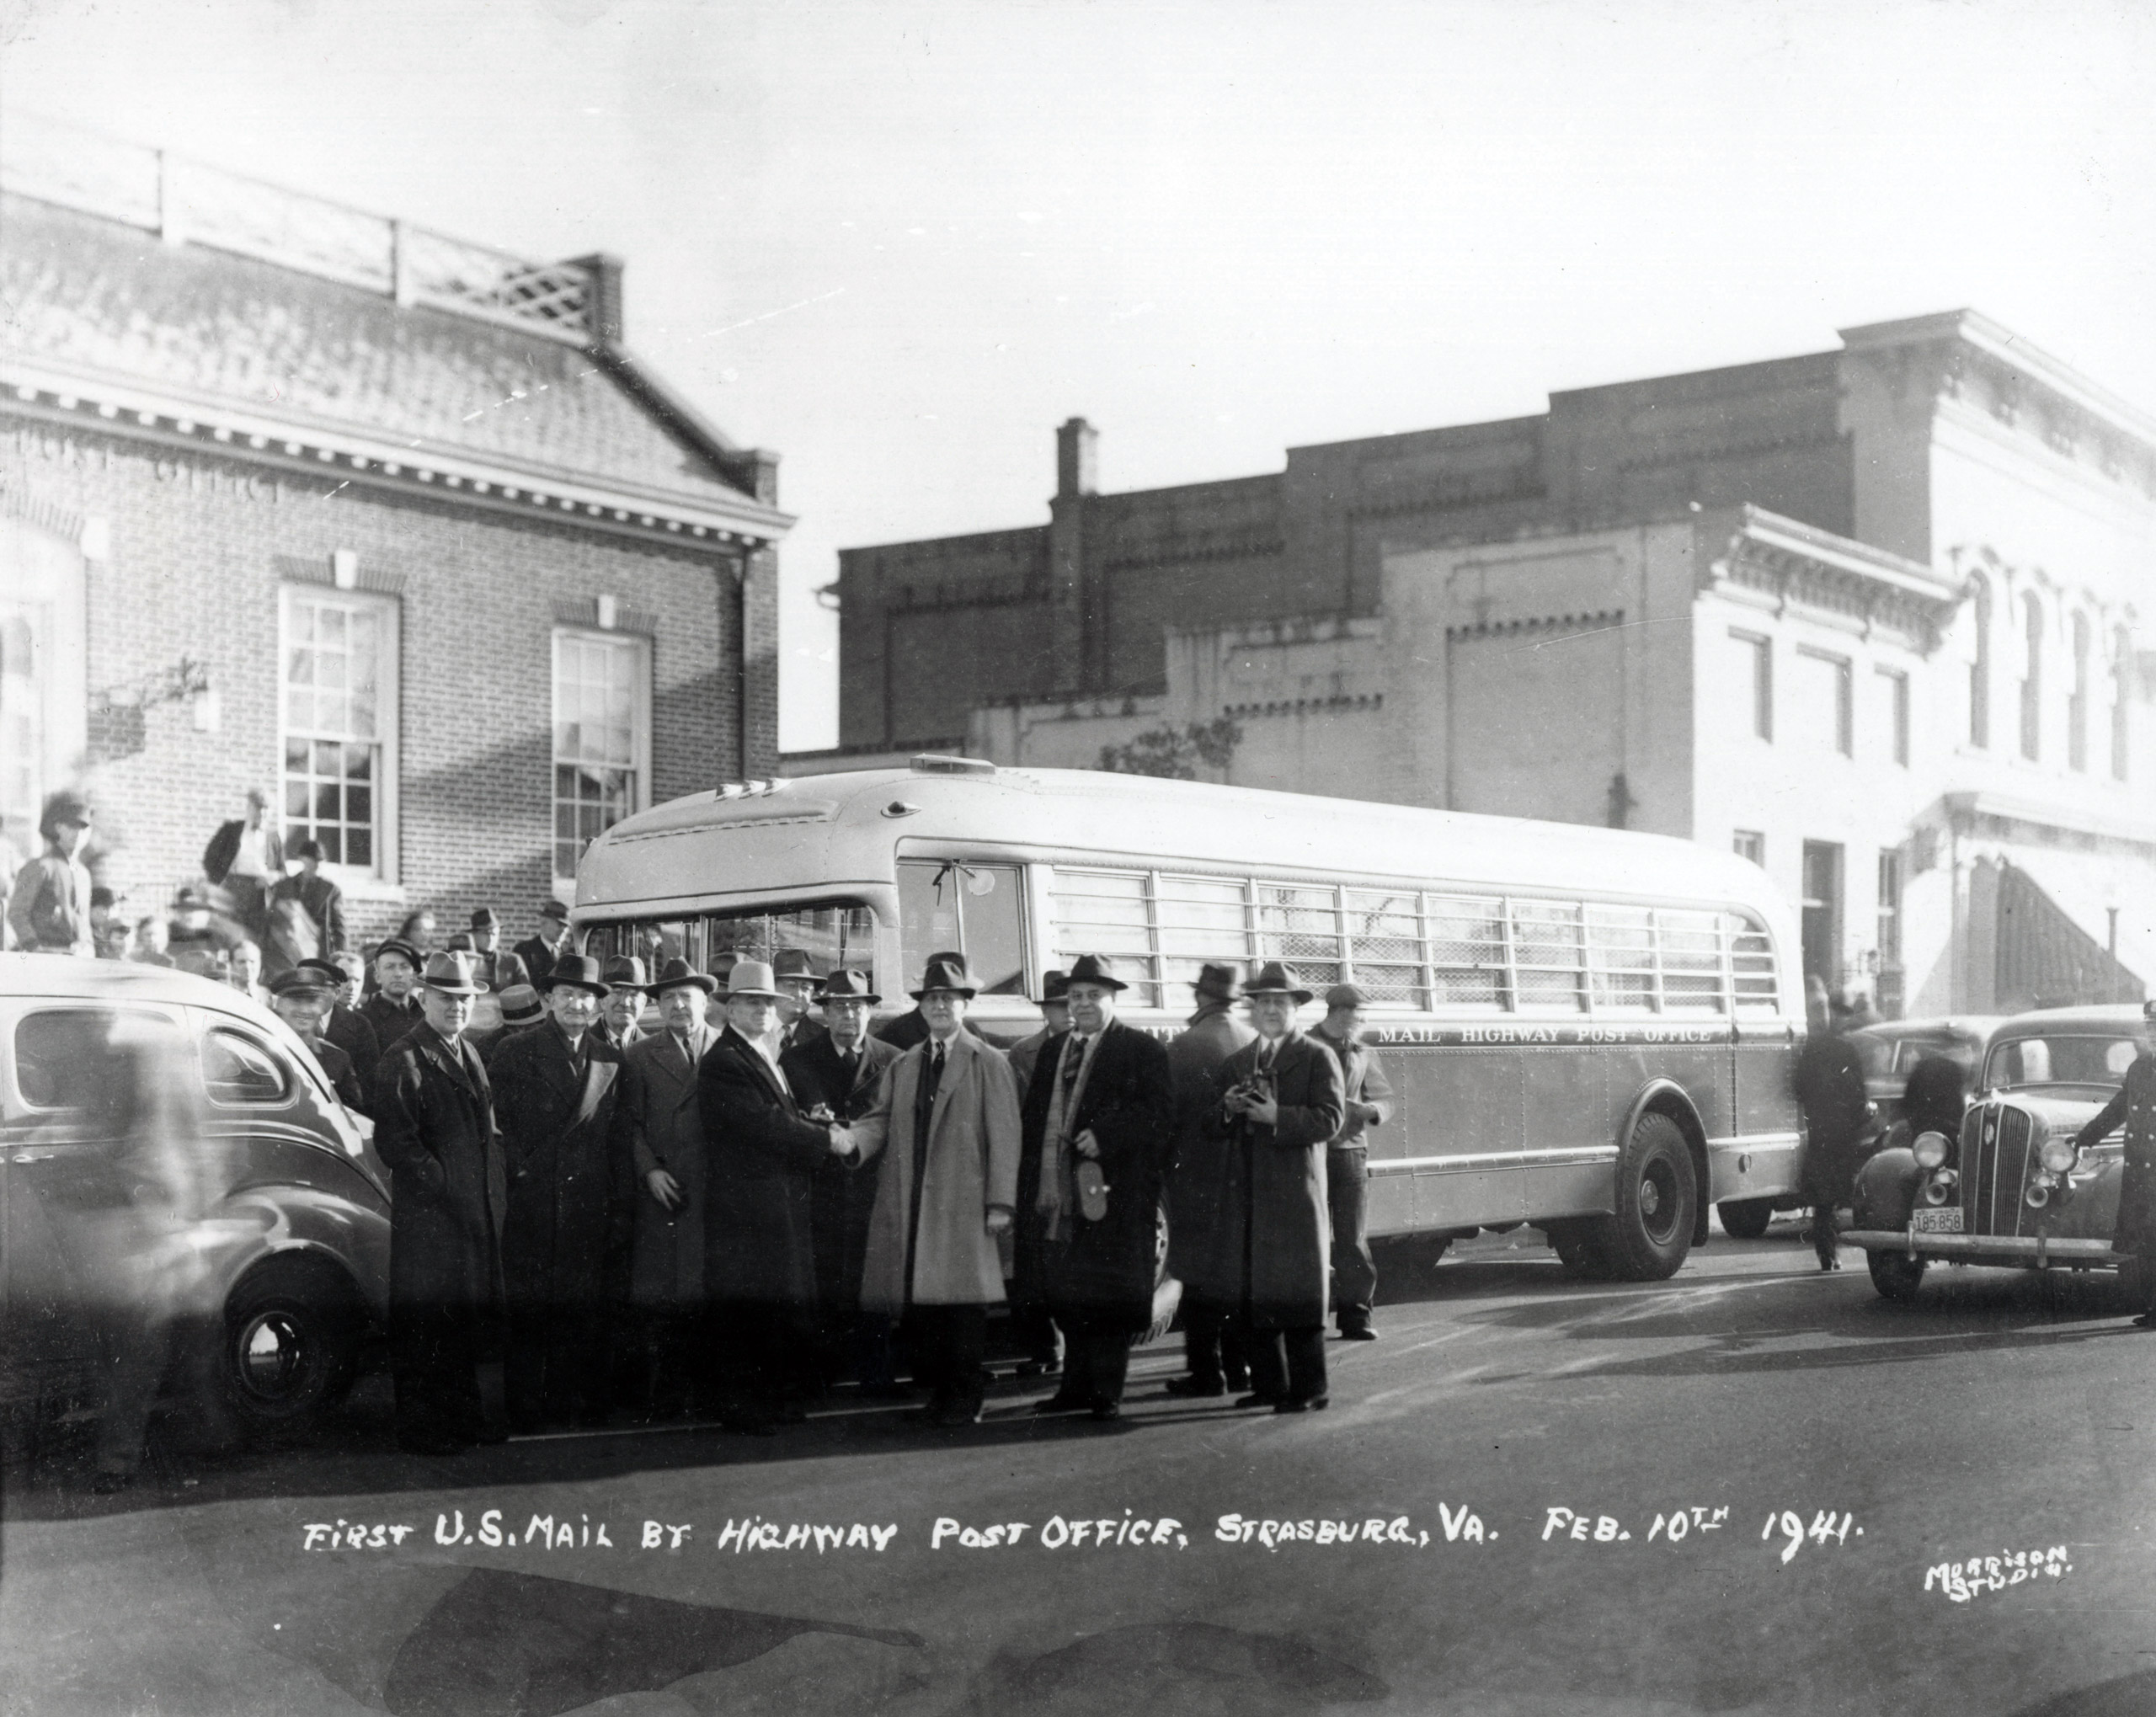 Officials are gathered to welcome the first Highway Post Office bus in Strasburg, Va., on Feb. 10, 1941. By the 1930s, a significant decline in railroad passenger traffic had caused a subsequent decline in the use of railway trains. To fill the void, the postal service transferred some en route distribution from trains to highway buses.